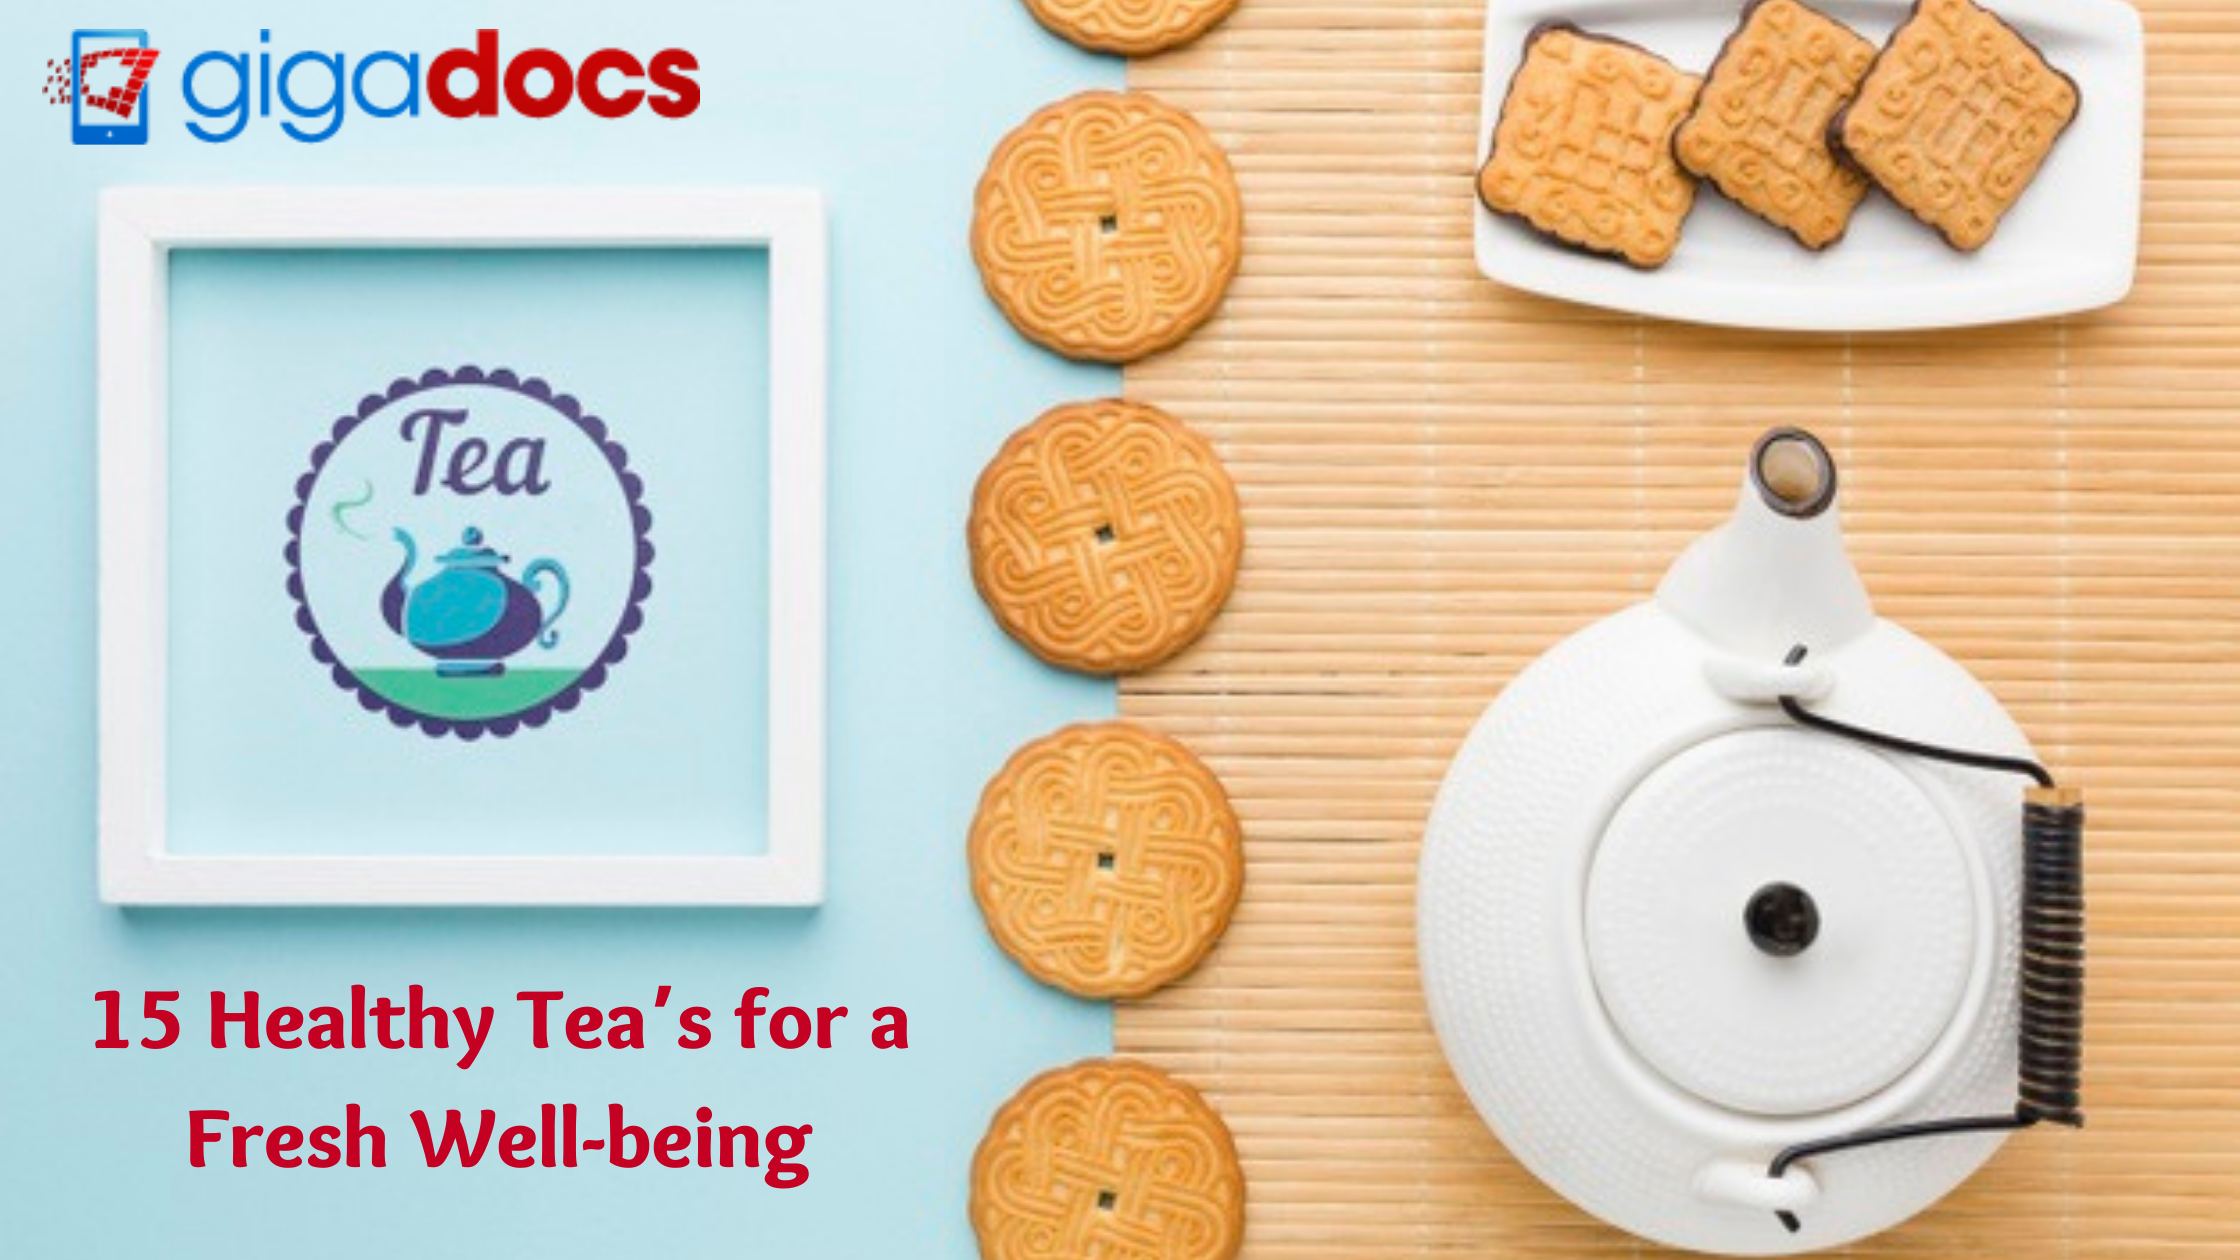 International Tea Day: 15 Teas that Relieve Stress and Anxiety